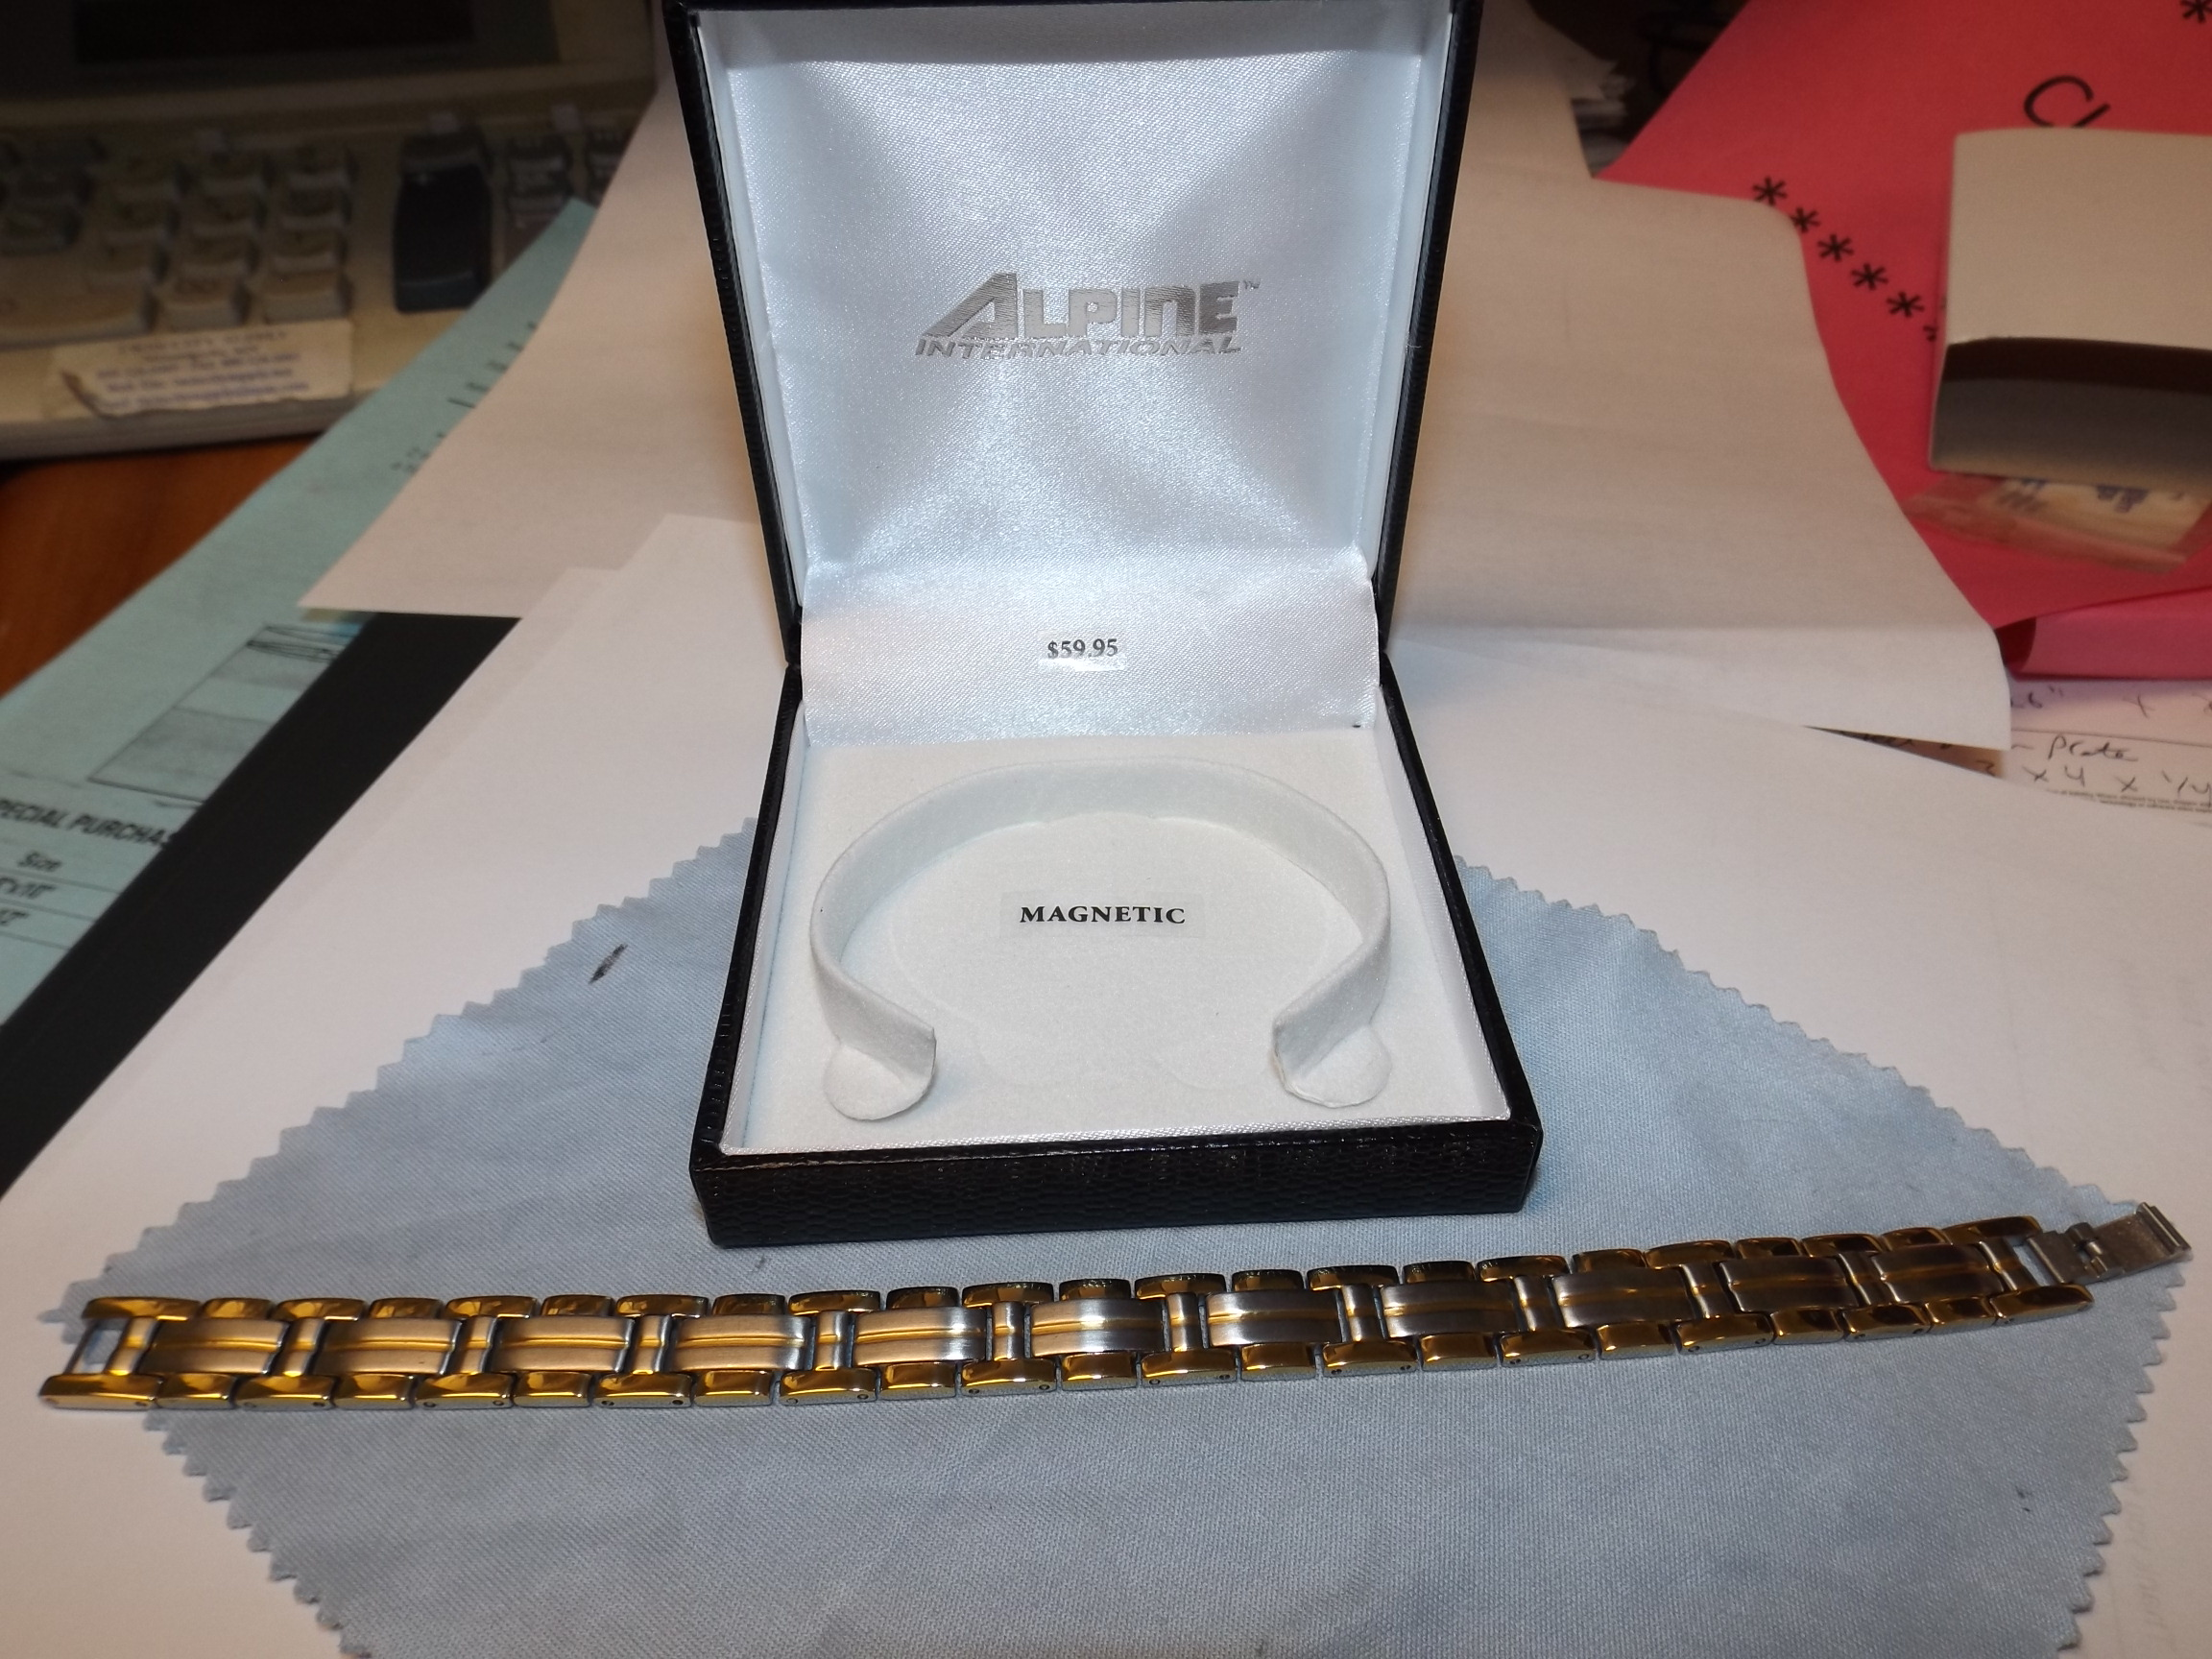 MSB653 Magnetic Bracelet- Stainless Steel 11mm Two-Tone New from Alpine!